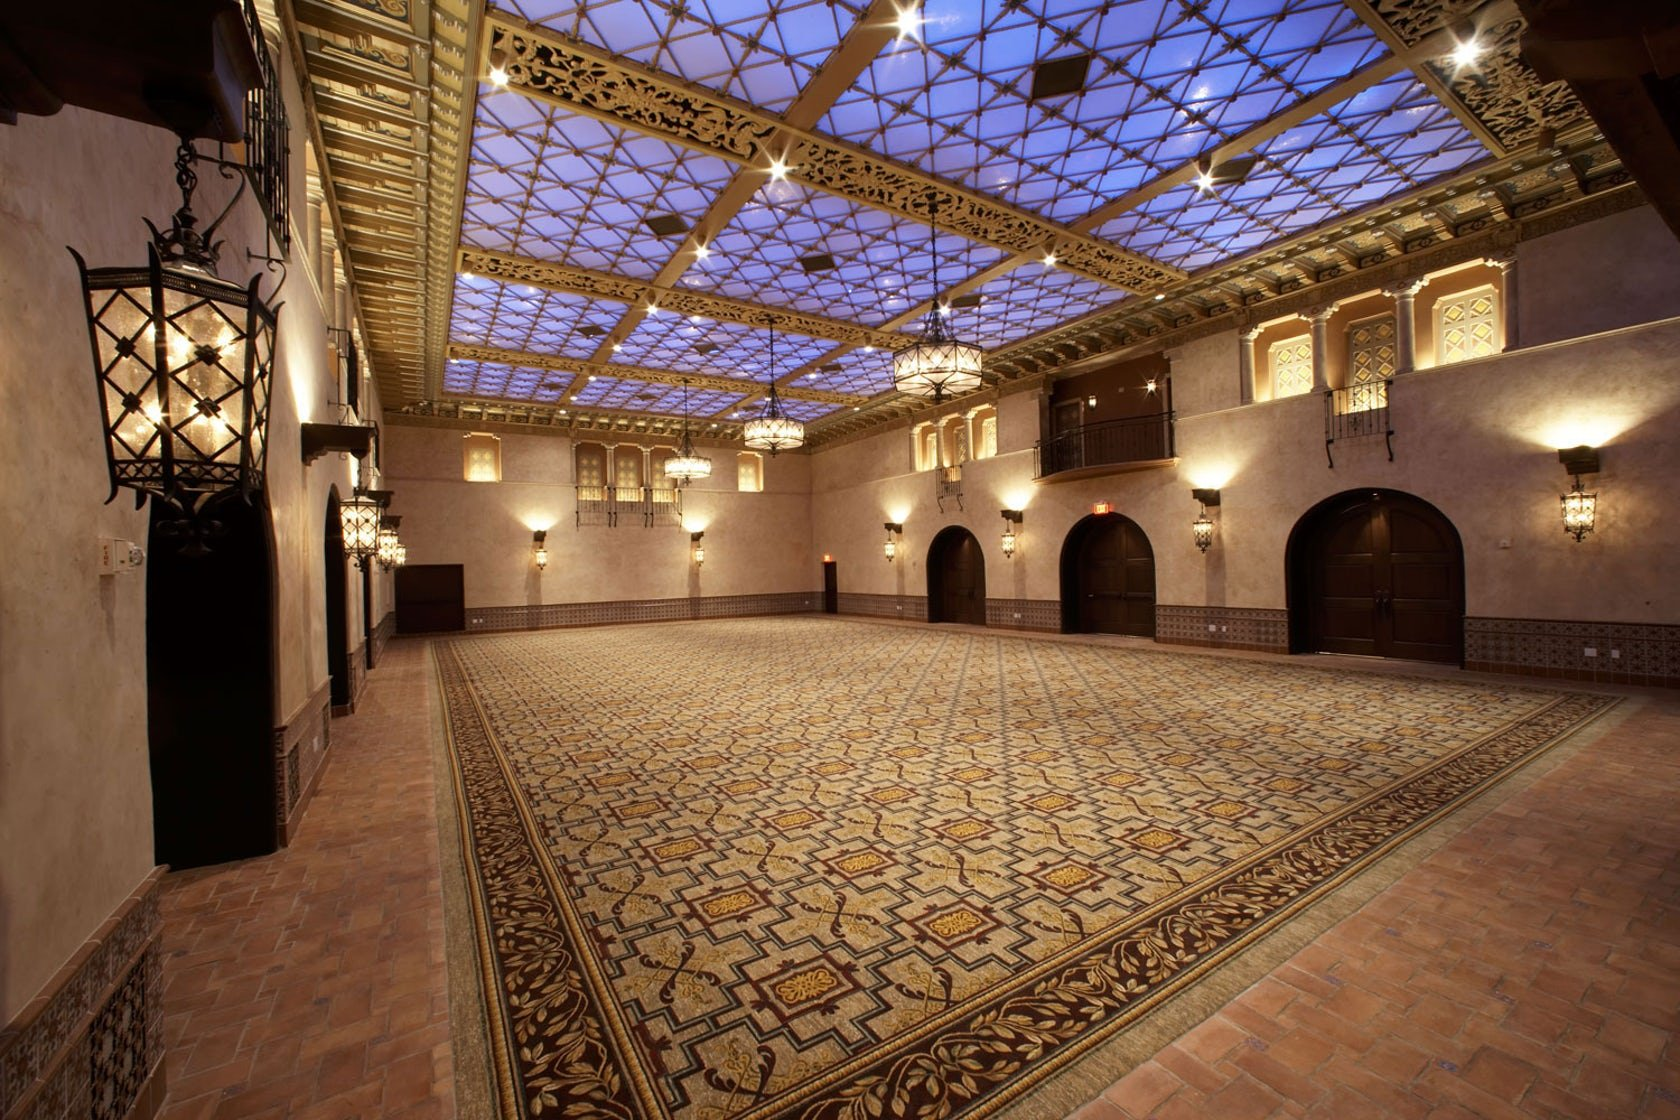 The Blossom Ballroom as it appears in the 2000s after extensive renovation